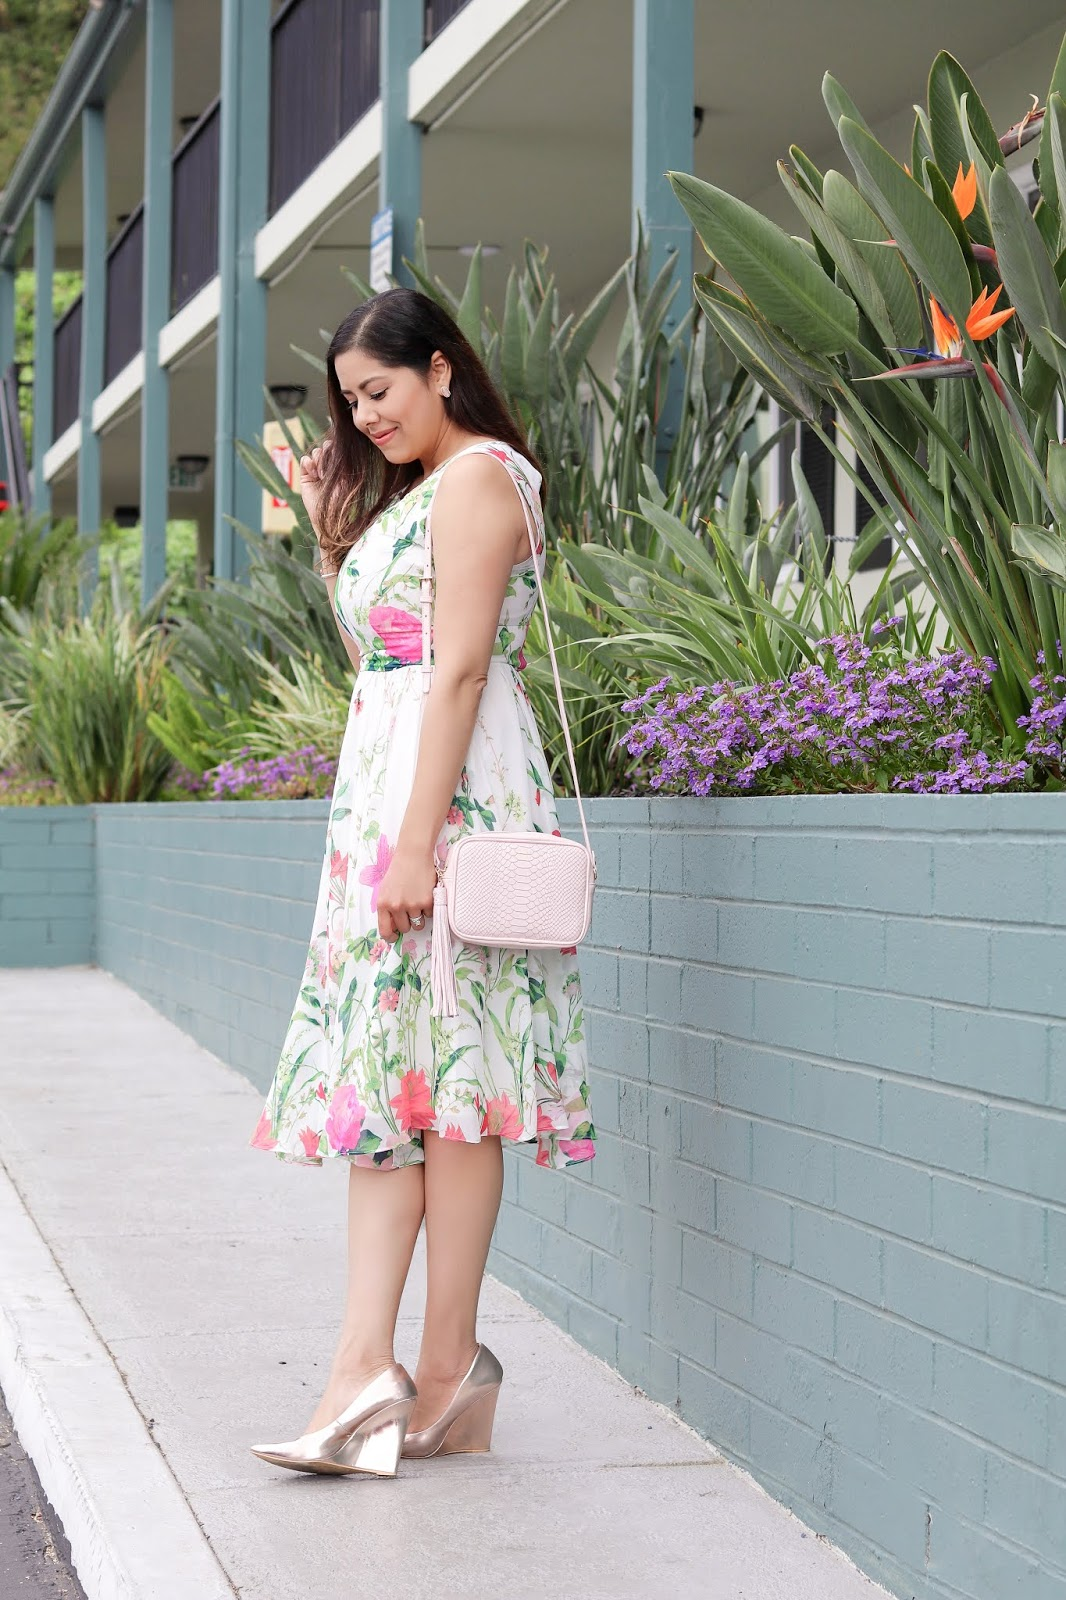 Vibrant Colored Spring Floral Dress | Lil bits of Chic by Paulina Mo ...